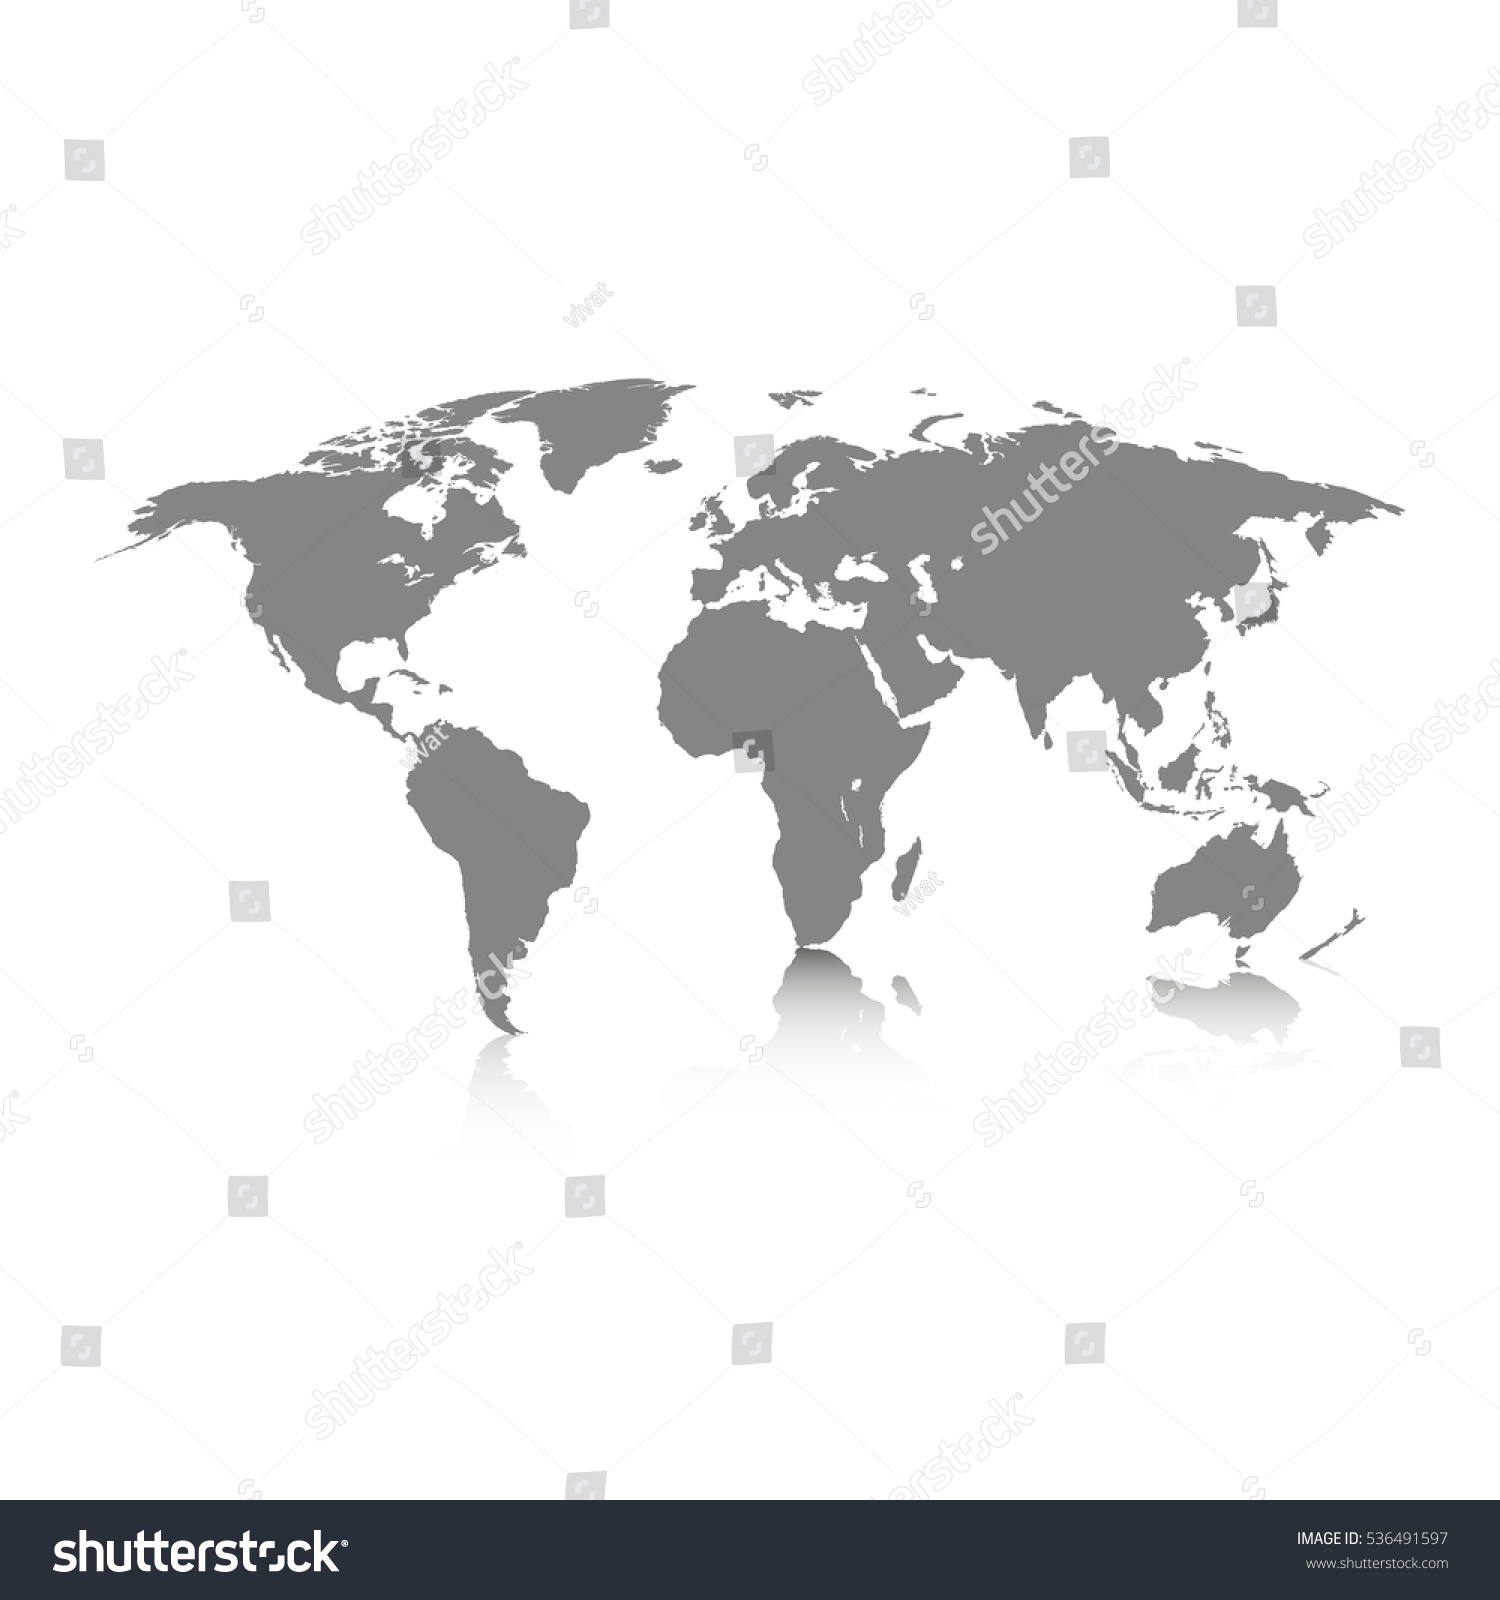 World map grey colored on white vector de stock536491597 shutterstock world map grey colored on a white background gumiabroncs Gallery